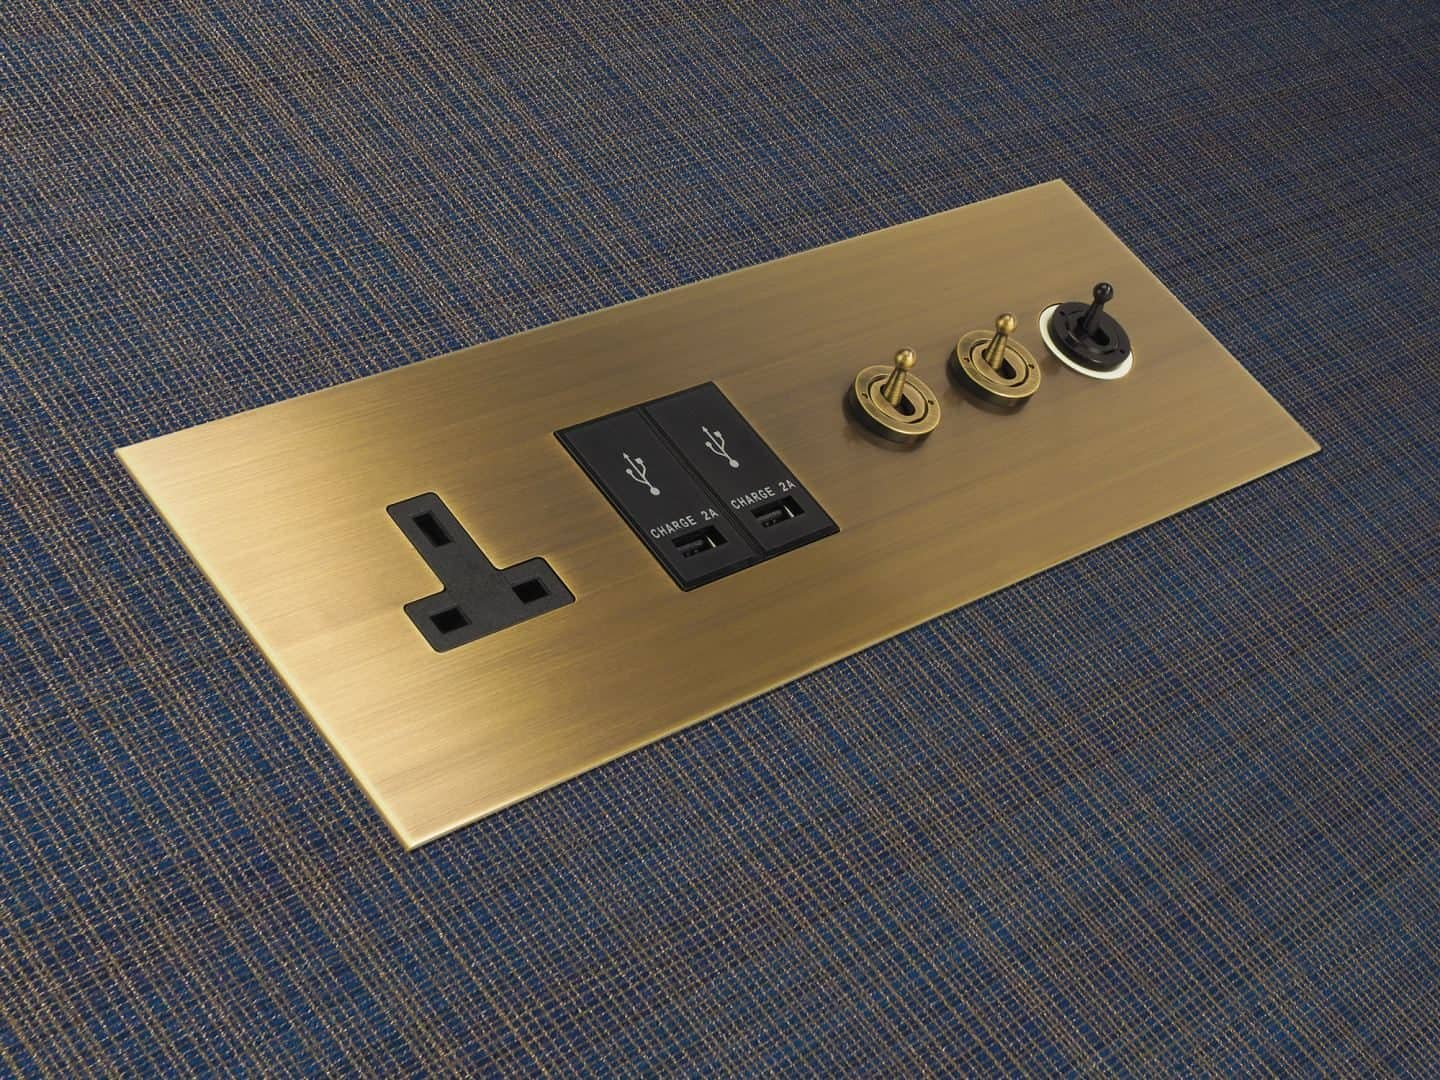 Designer Electrical Wiring Accessories from Focus SB come in 20 different finishes